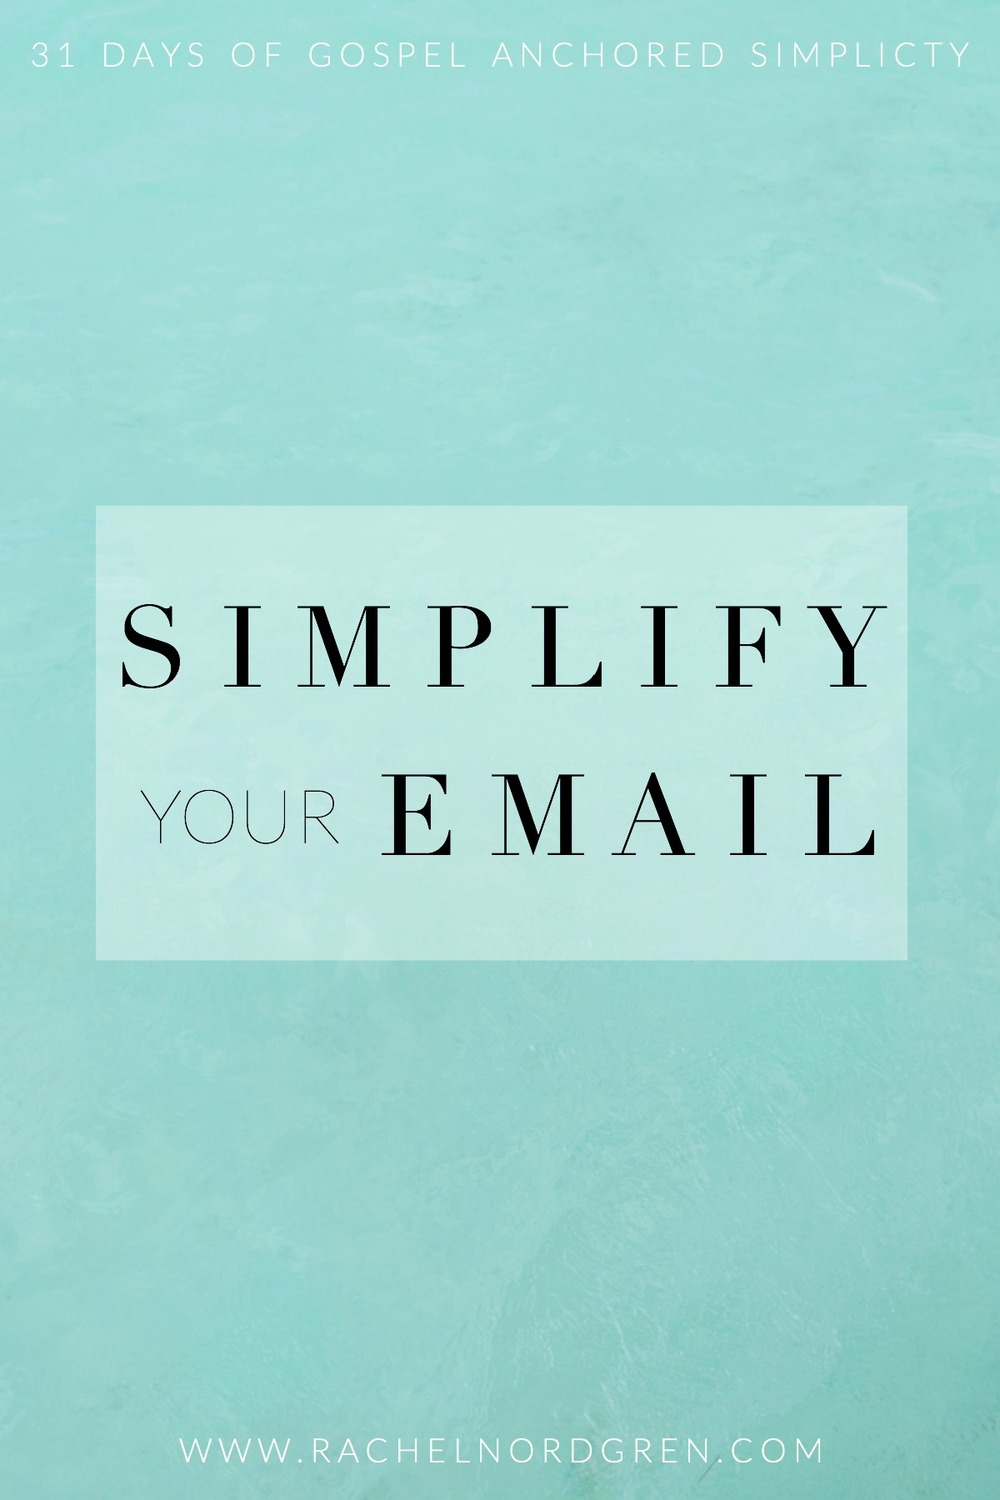 Write 31 Days: How to Simplify Your Email